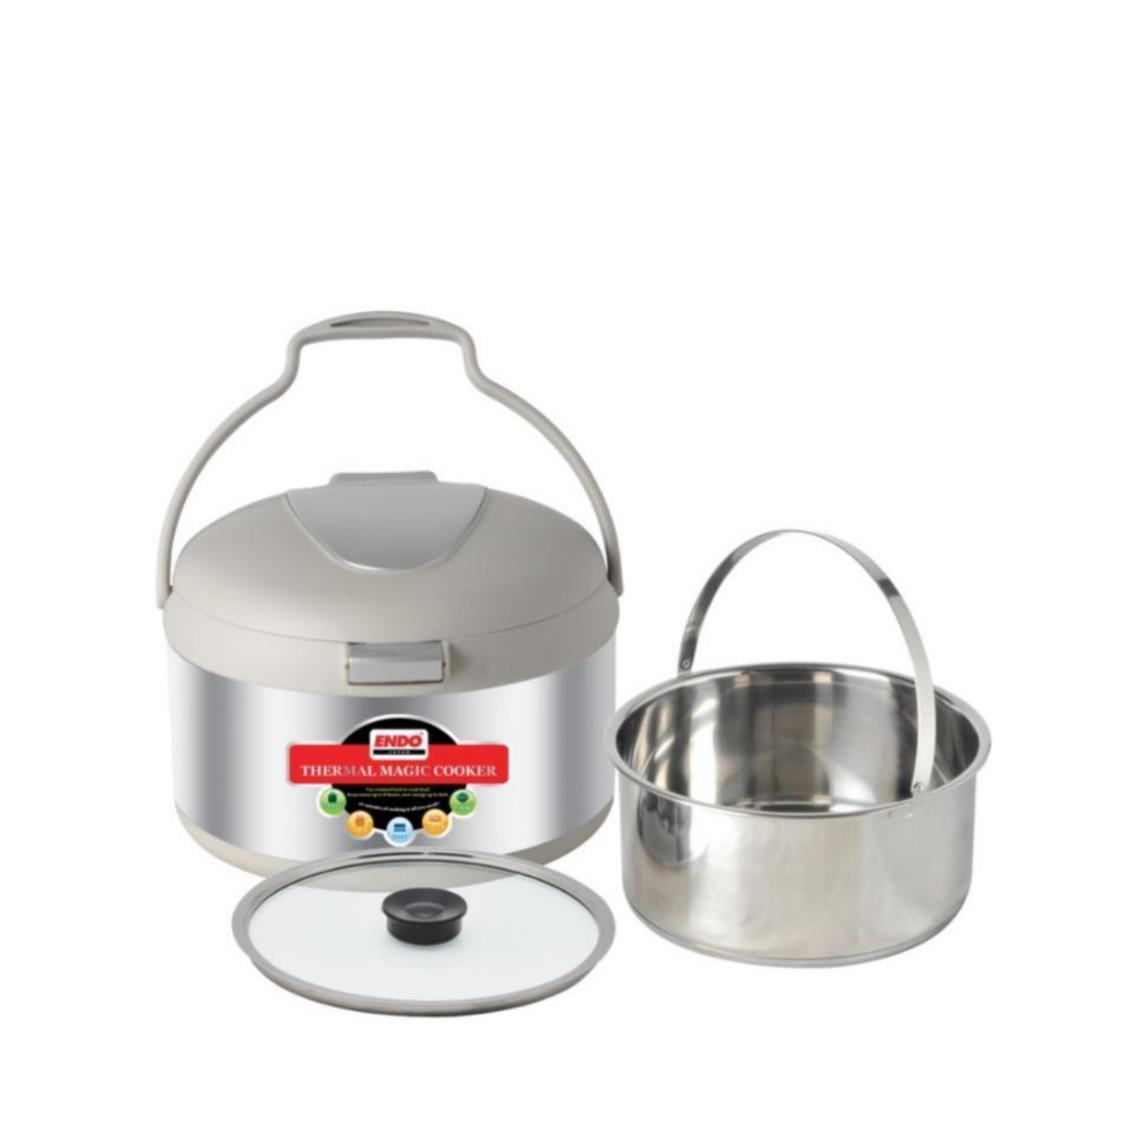 Thermal Magic Cooker 35L